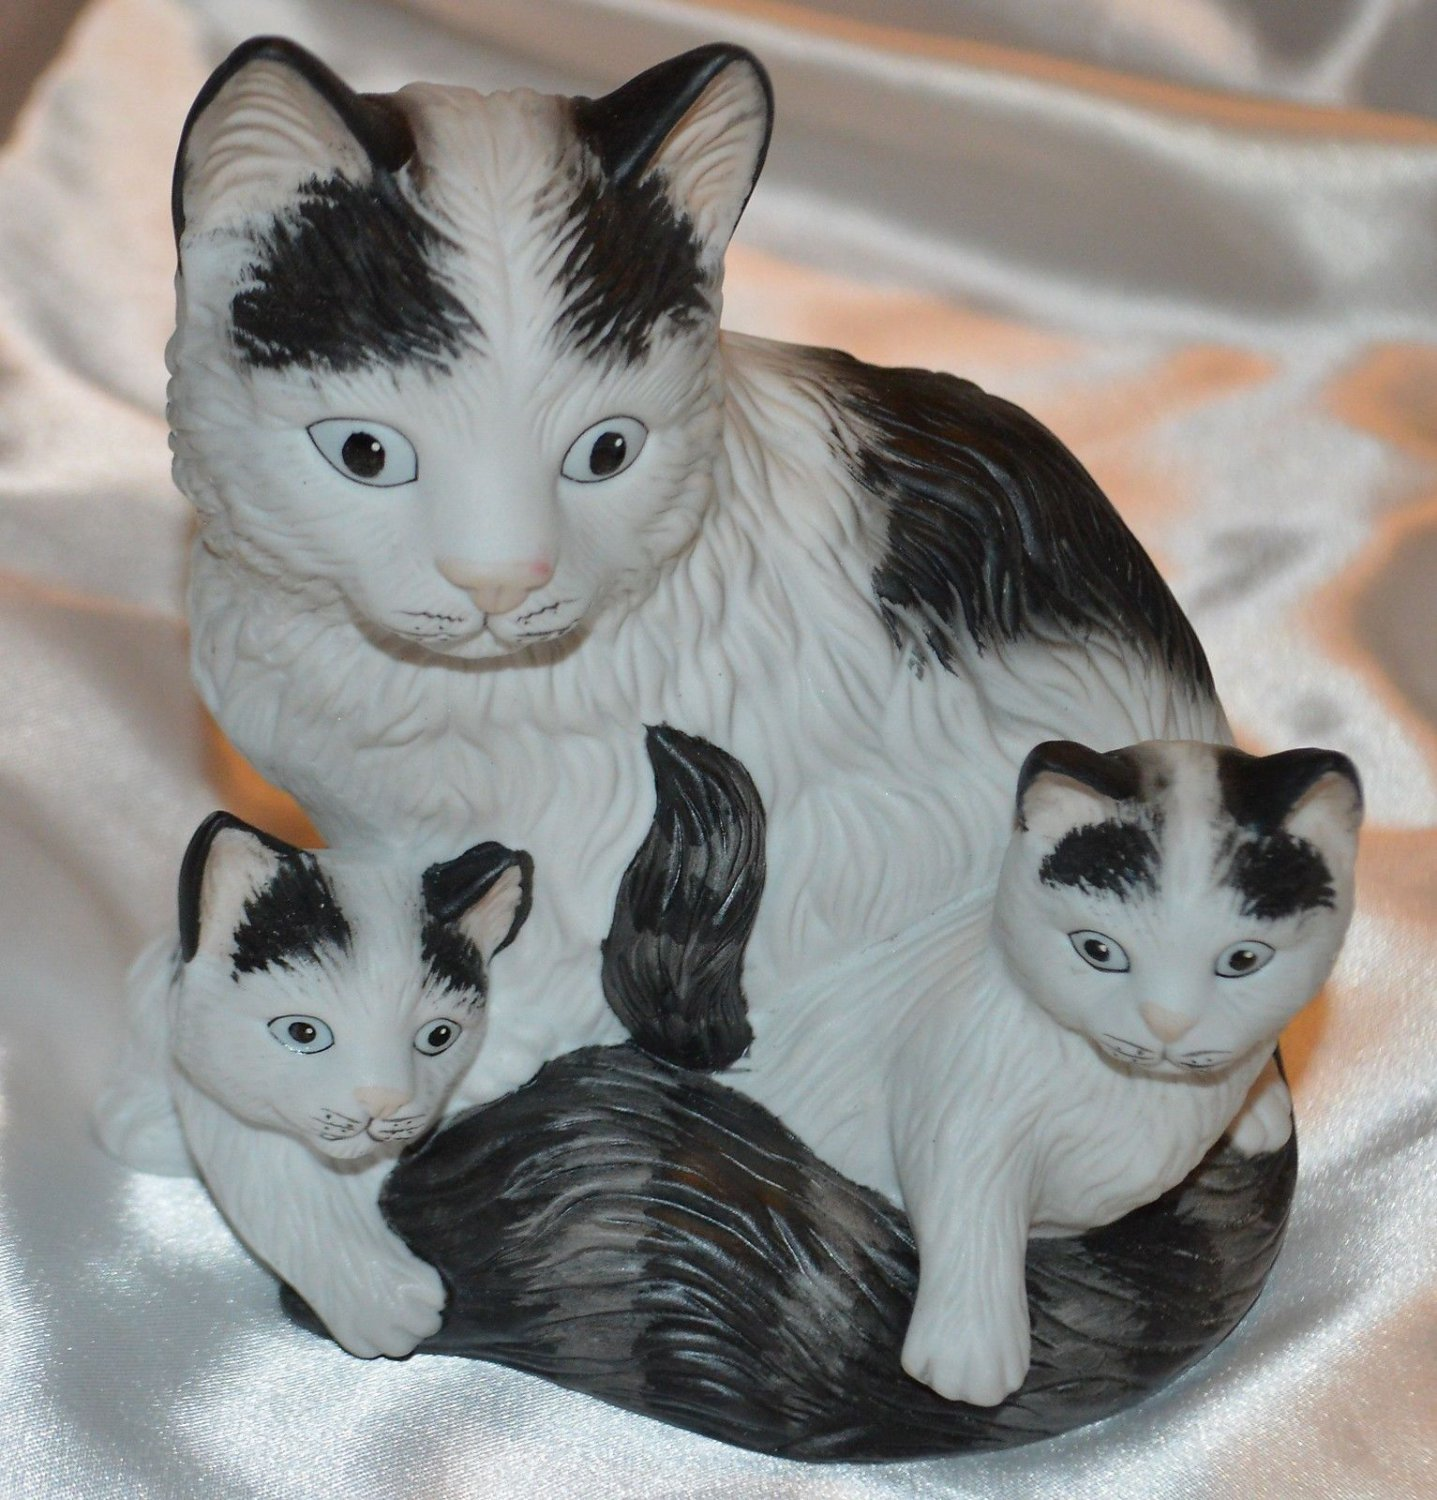 Porcelain Ceramic Feline Cat with Kittens figurine Black & White